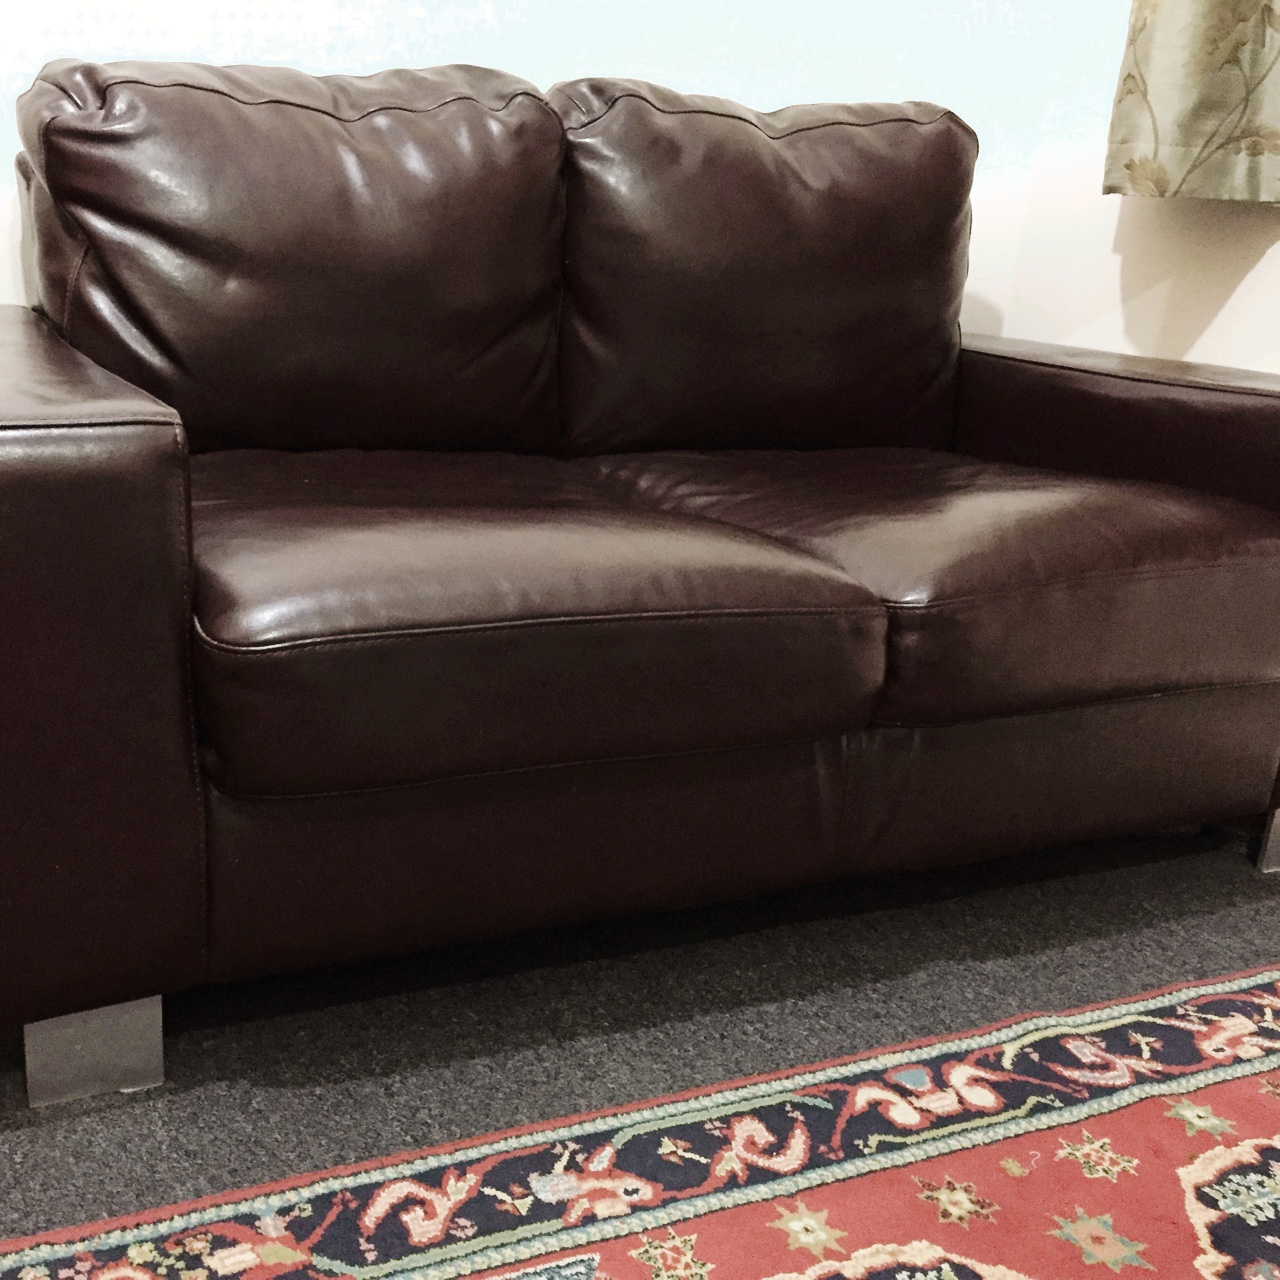 Superb Chocolate Brown 2 Seater Faux Leather Sofa In Depop Onthecornerstone Fun Painted Chair Ideas Images Onthecornerstoneorg